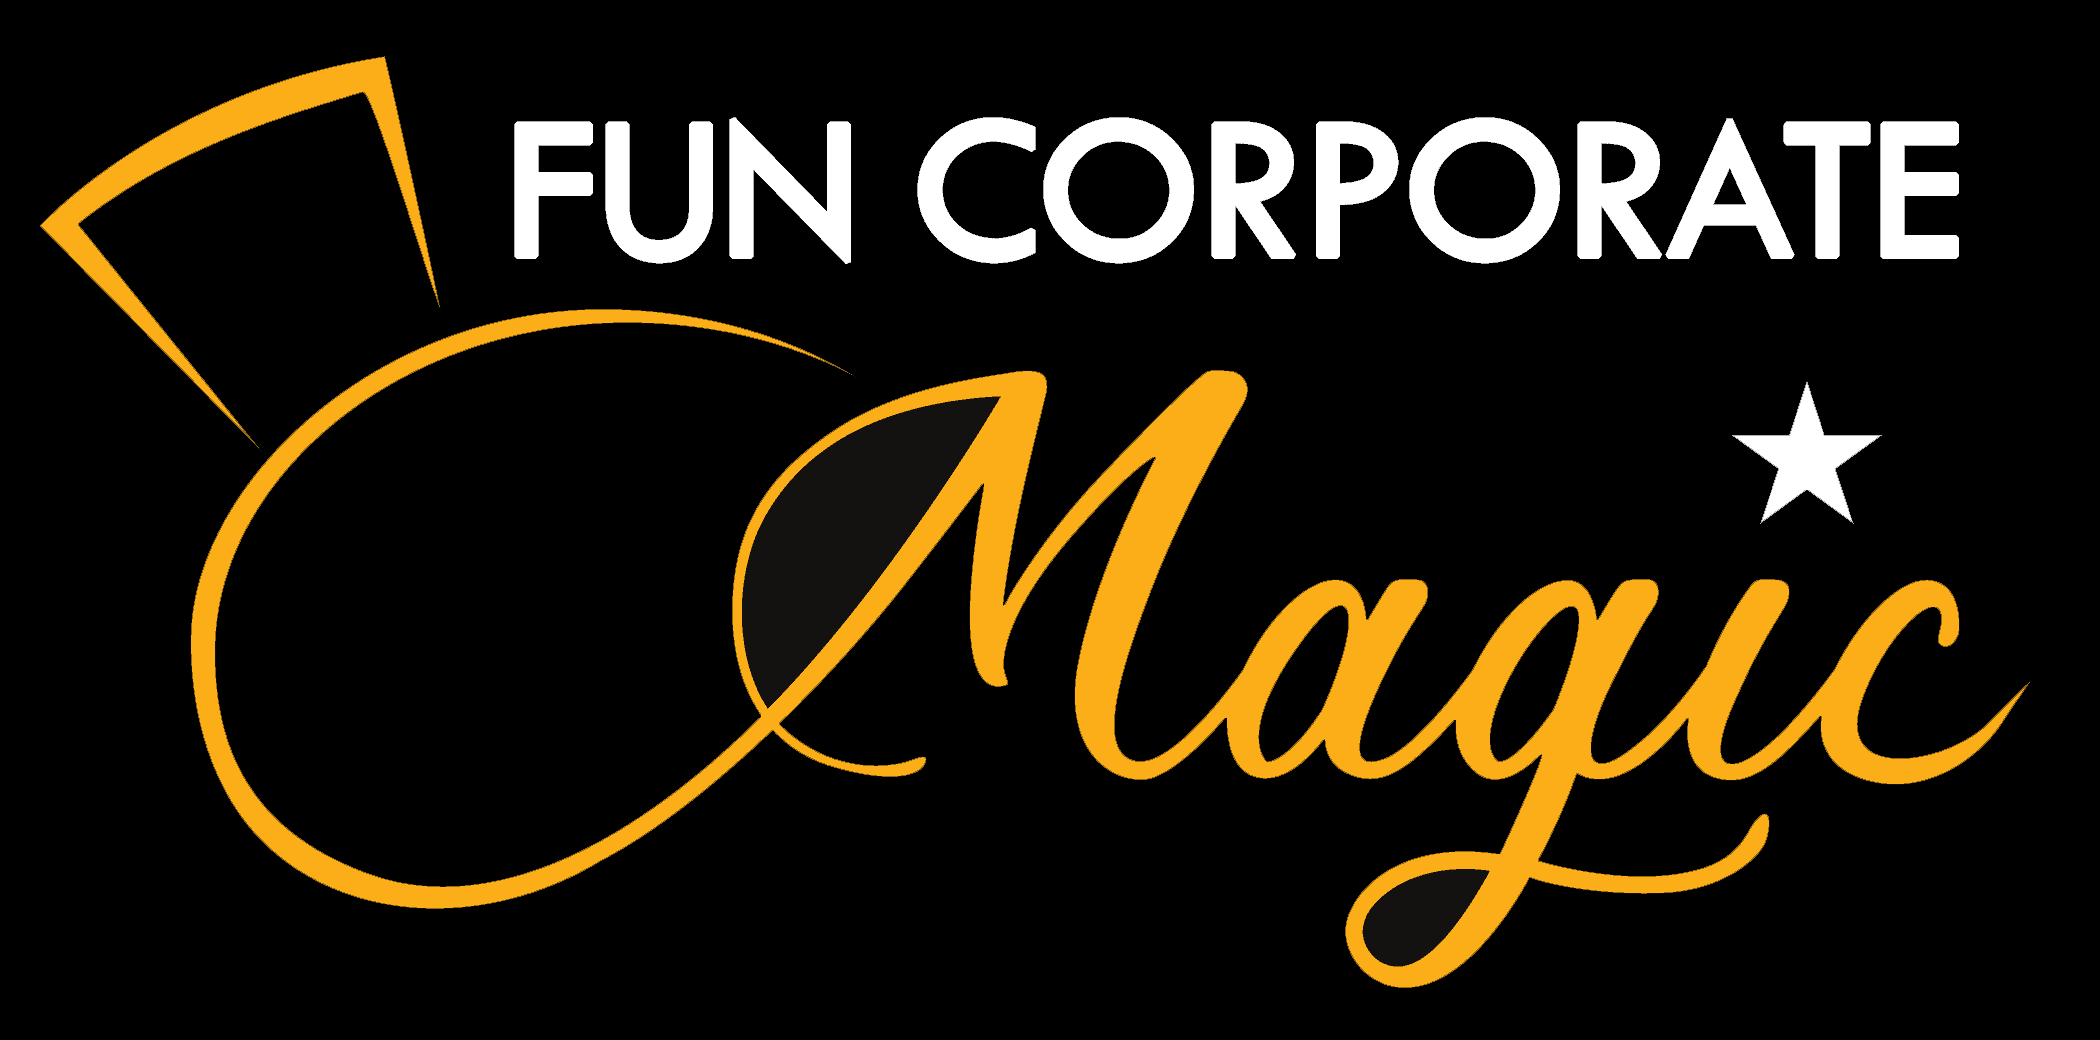 Fun Corporate Magic Black